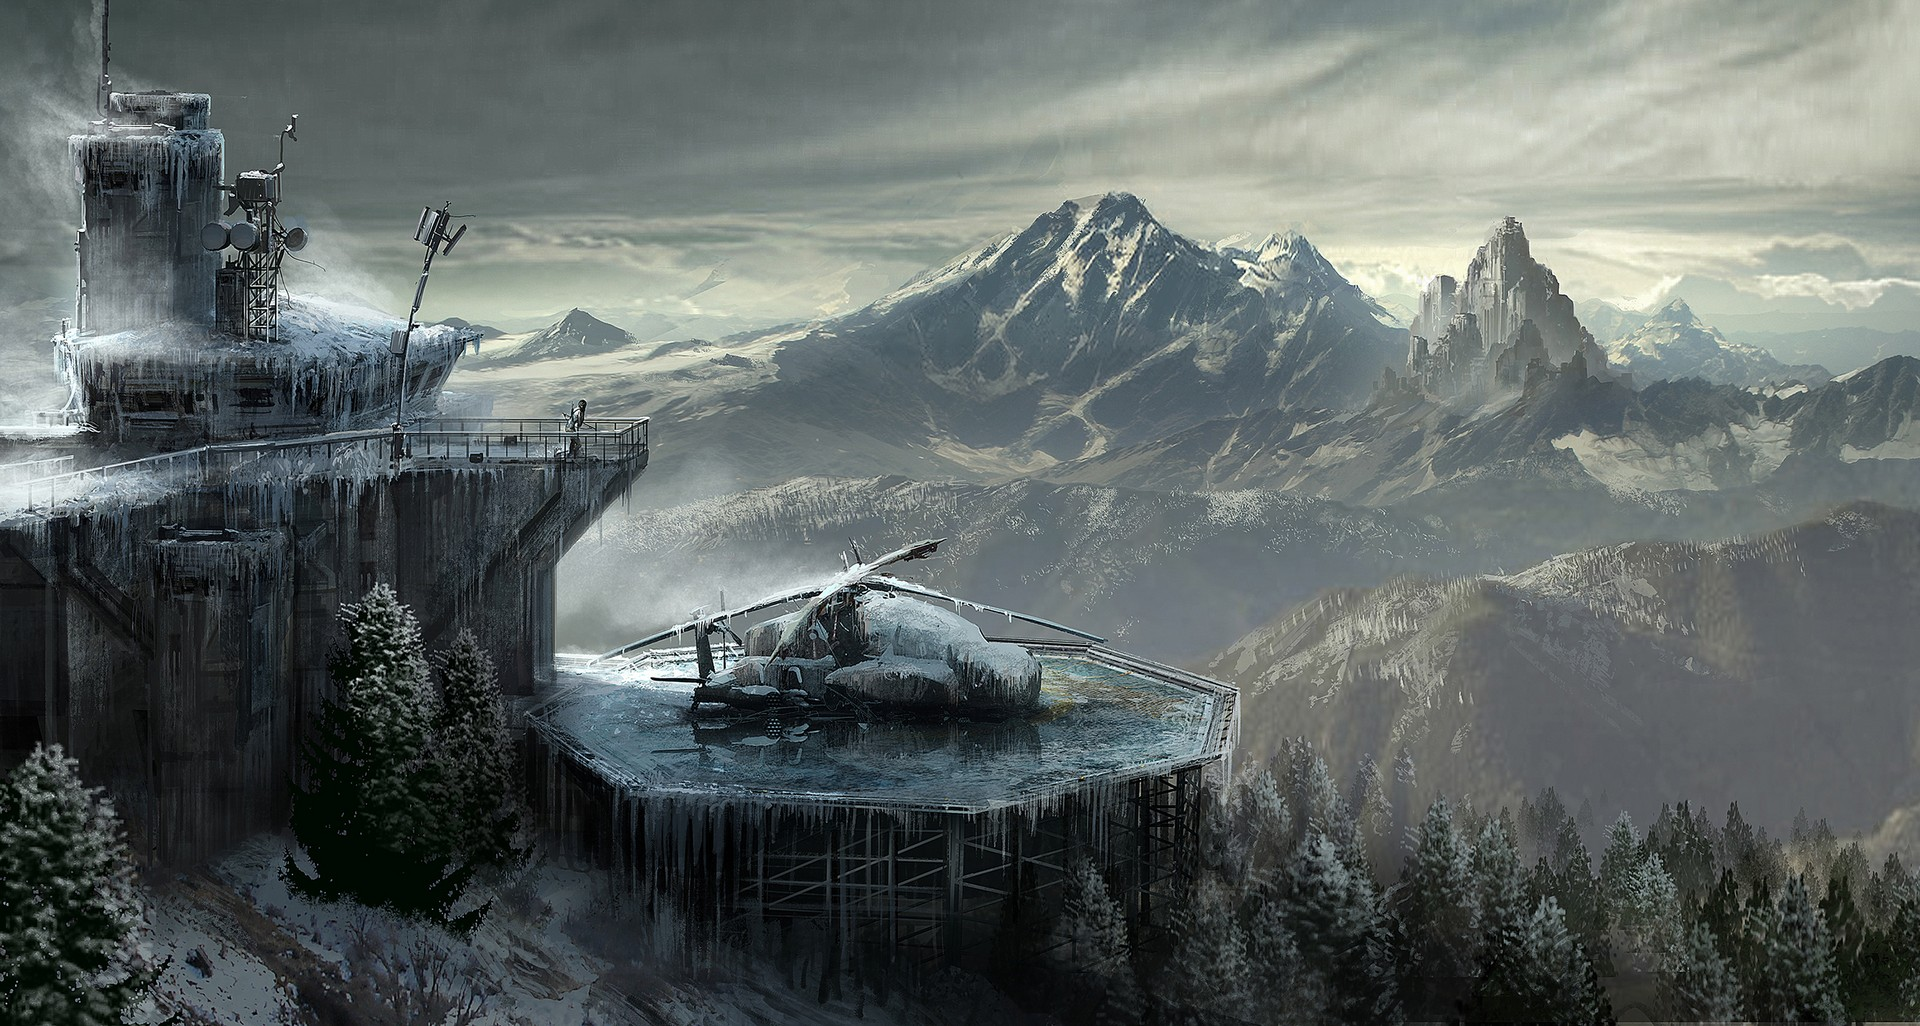 gpx2_rise-of-the-tomb-raider-concept-art-2.jpg